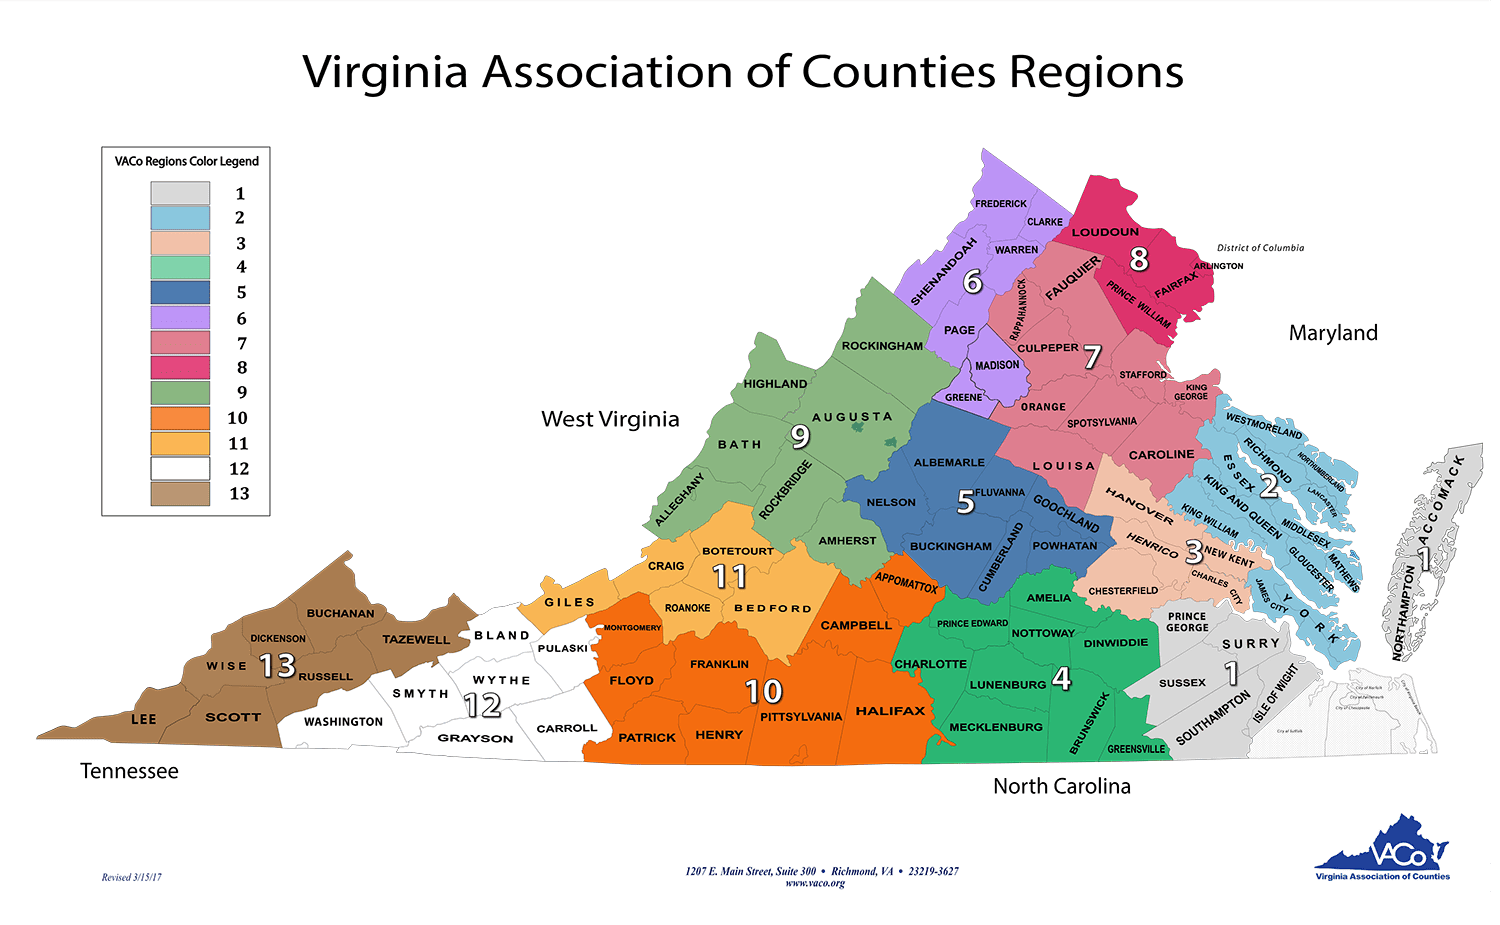 County Websites Links - Virginia Association of Counties